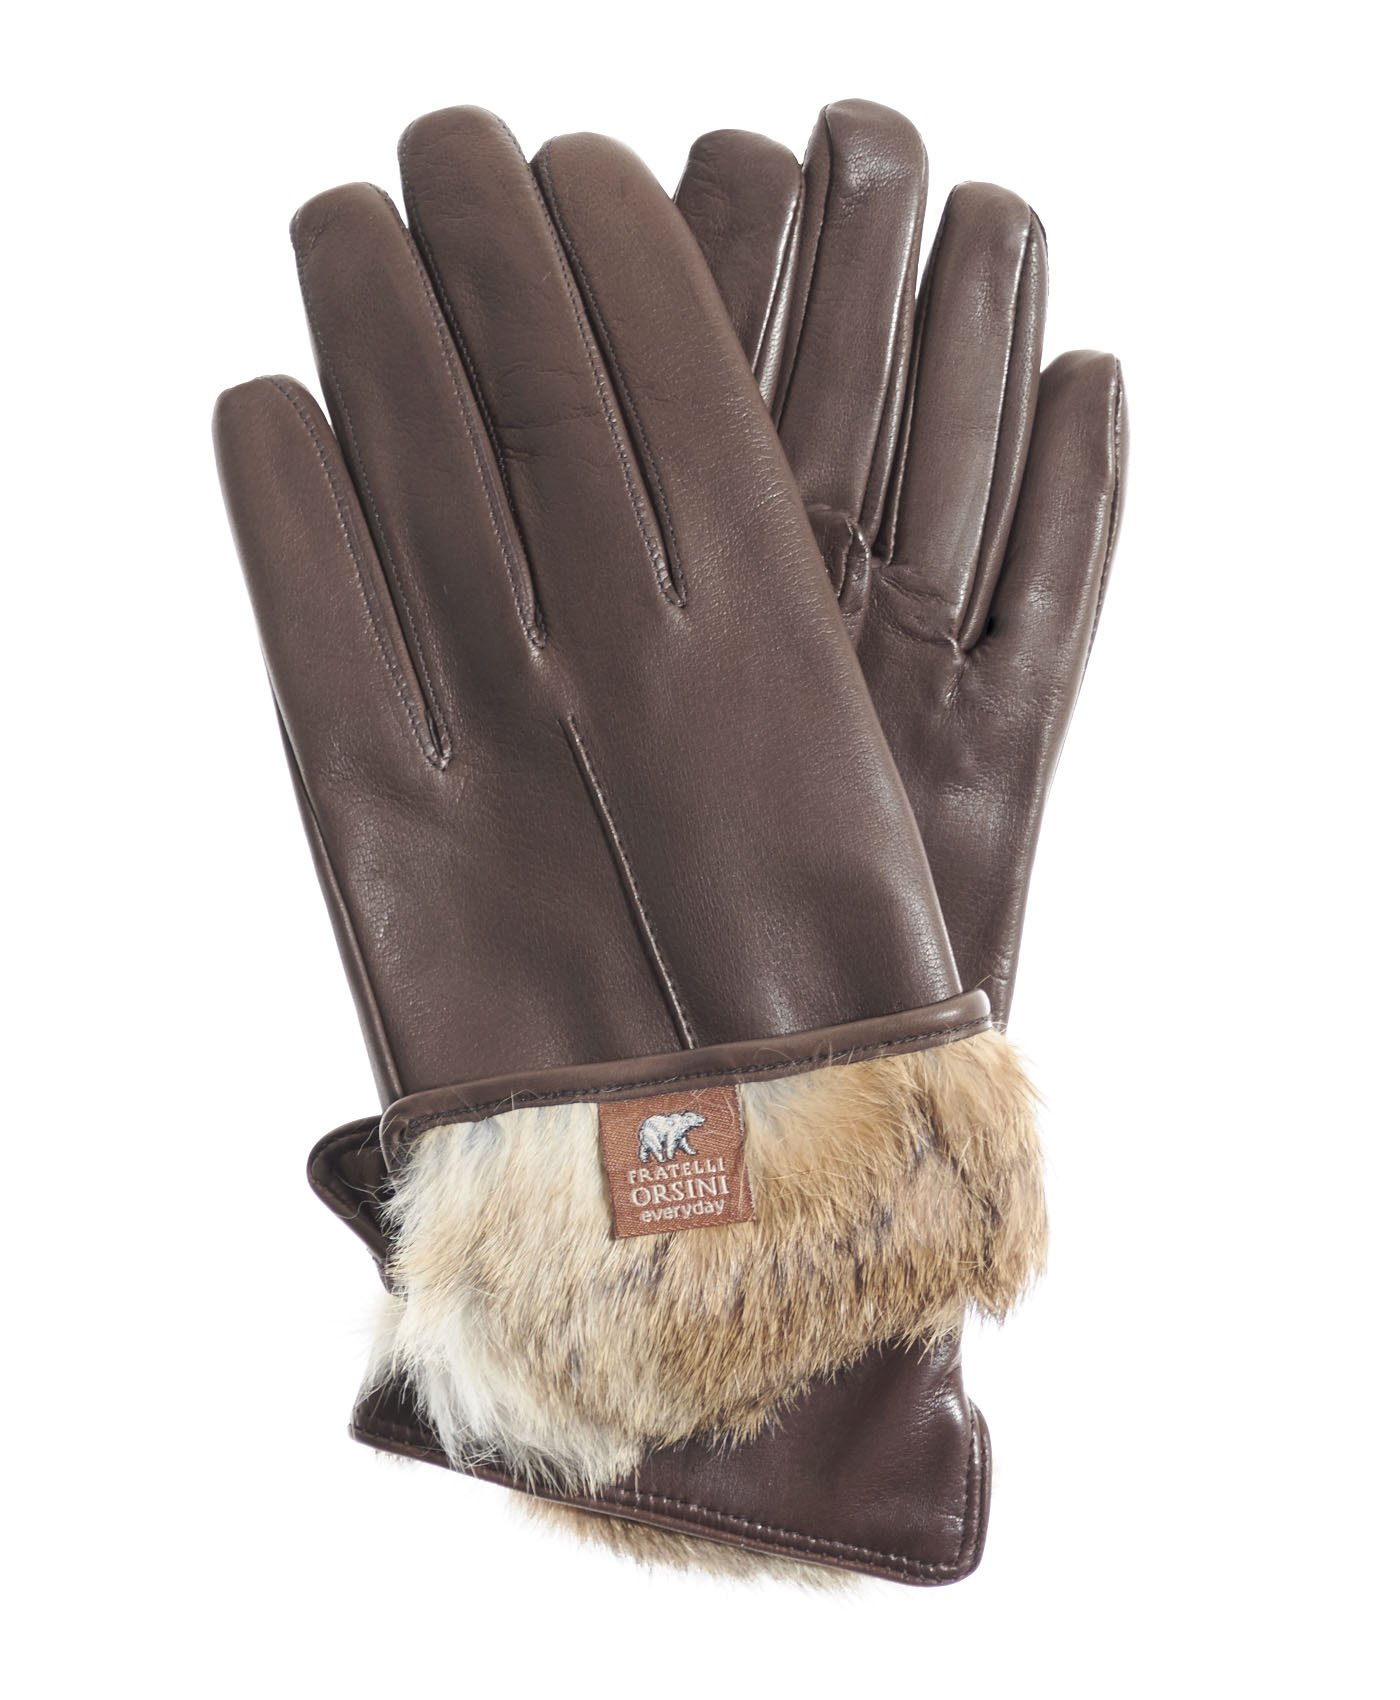 Fratelli Orsini Everyday Women's Our Bestselling Italian Rabbit Fur Gloves Size 8 1/2 Color Brown/Natural Fur